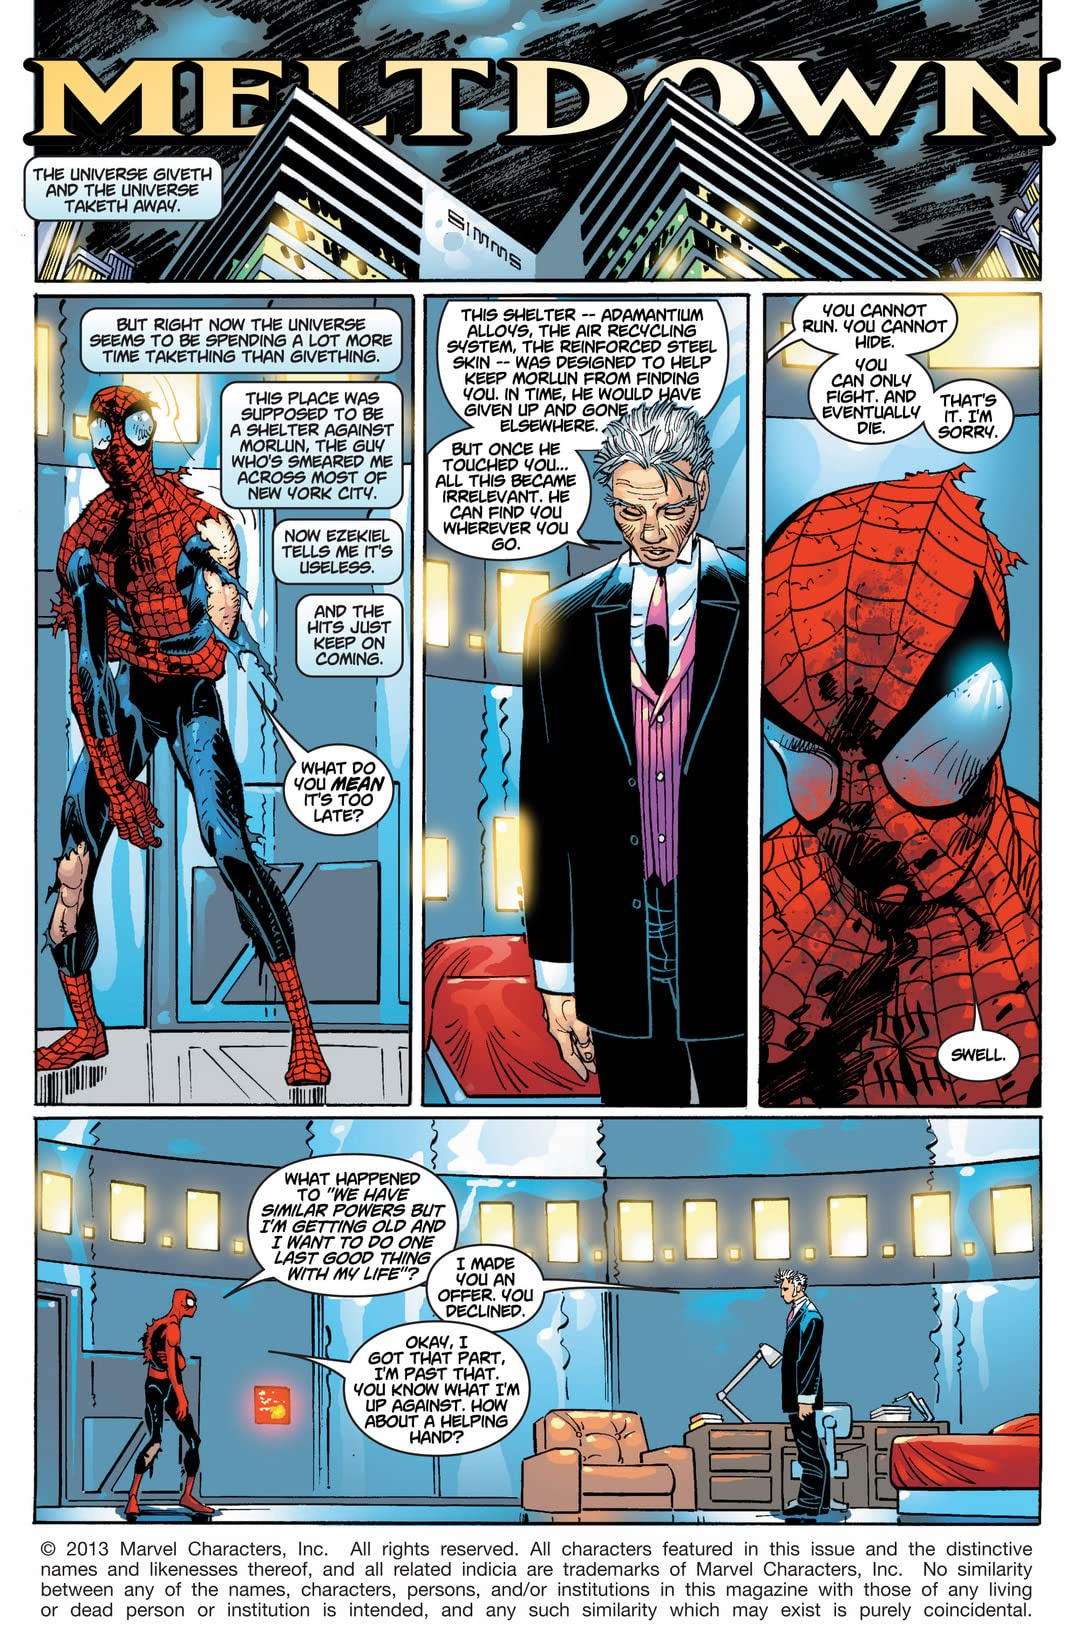 Amazing Spider-Man (1999-2013) #34